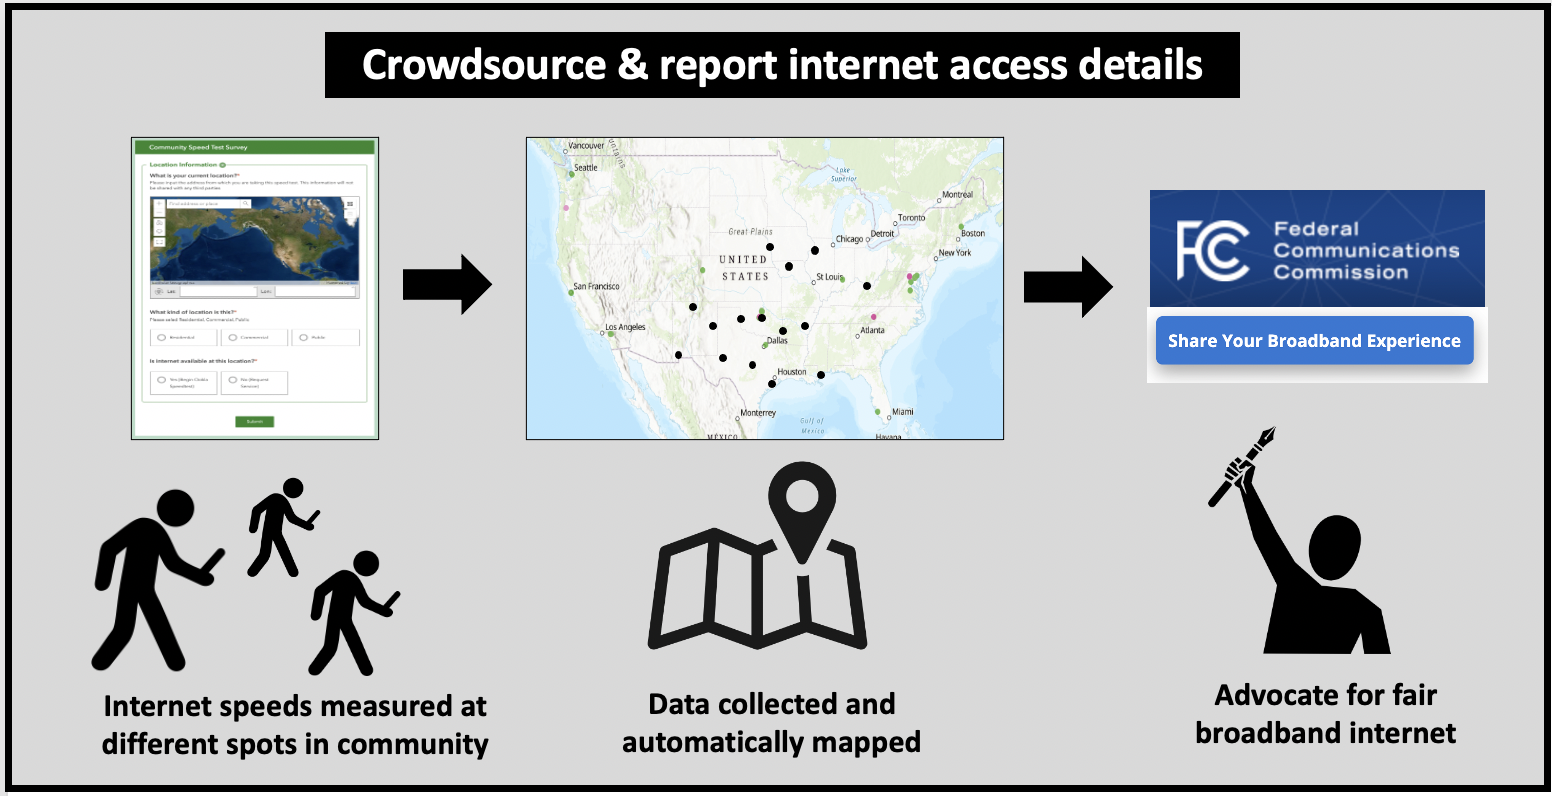 Crowdsource details about broadband internet access in your community and share it with FCC.